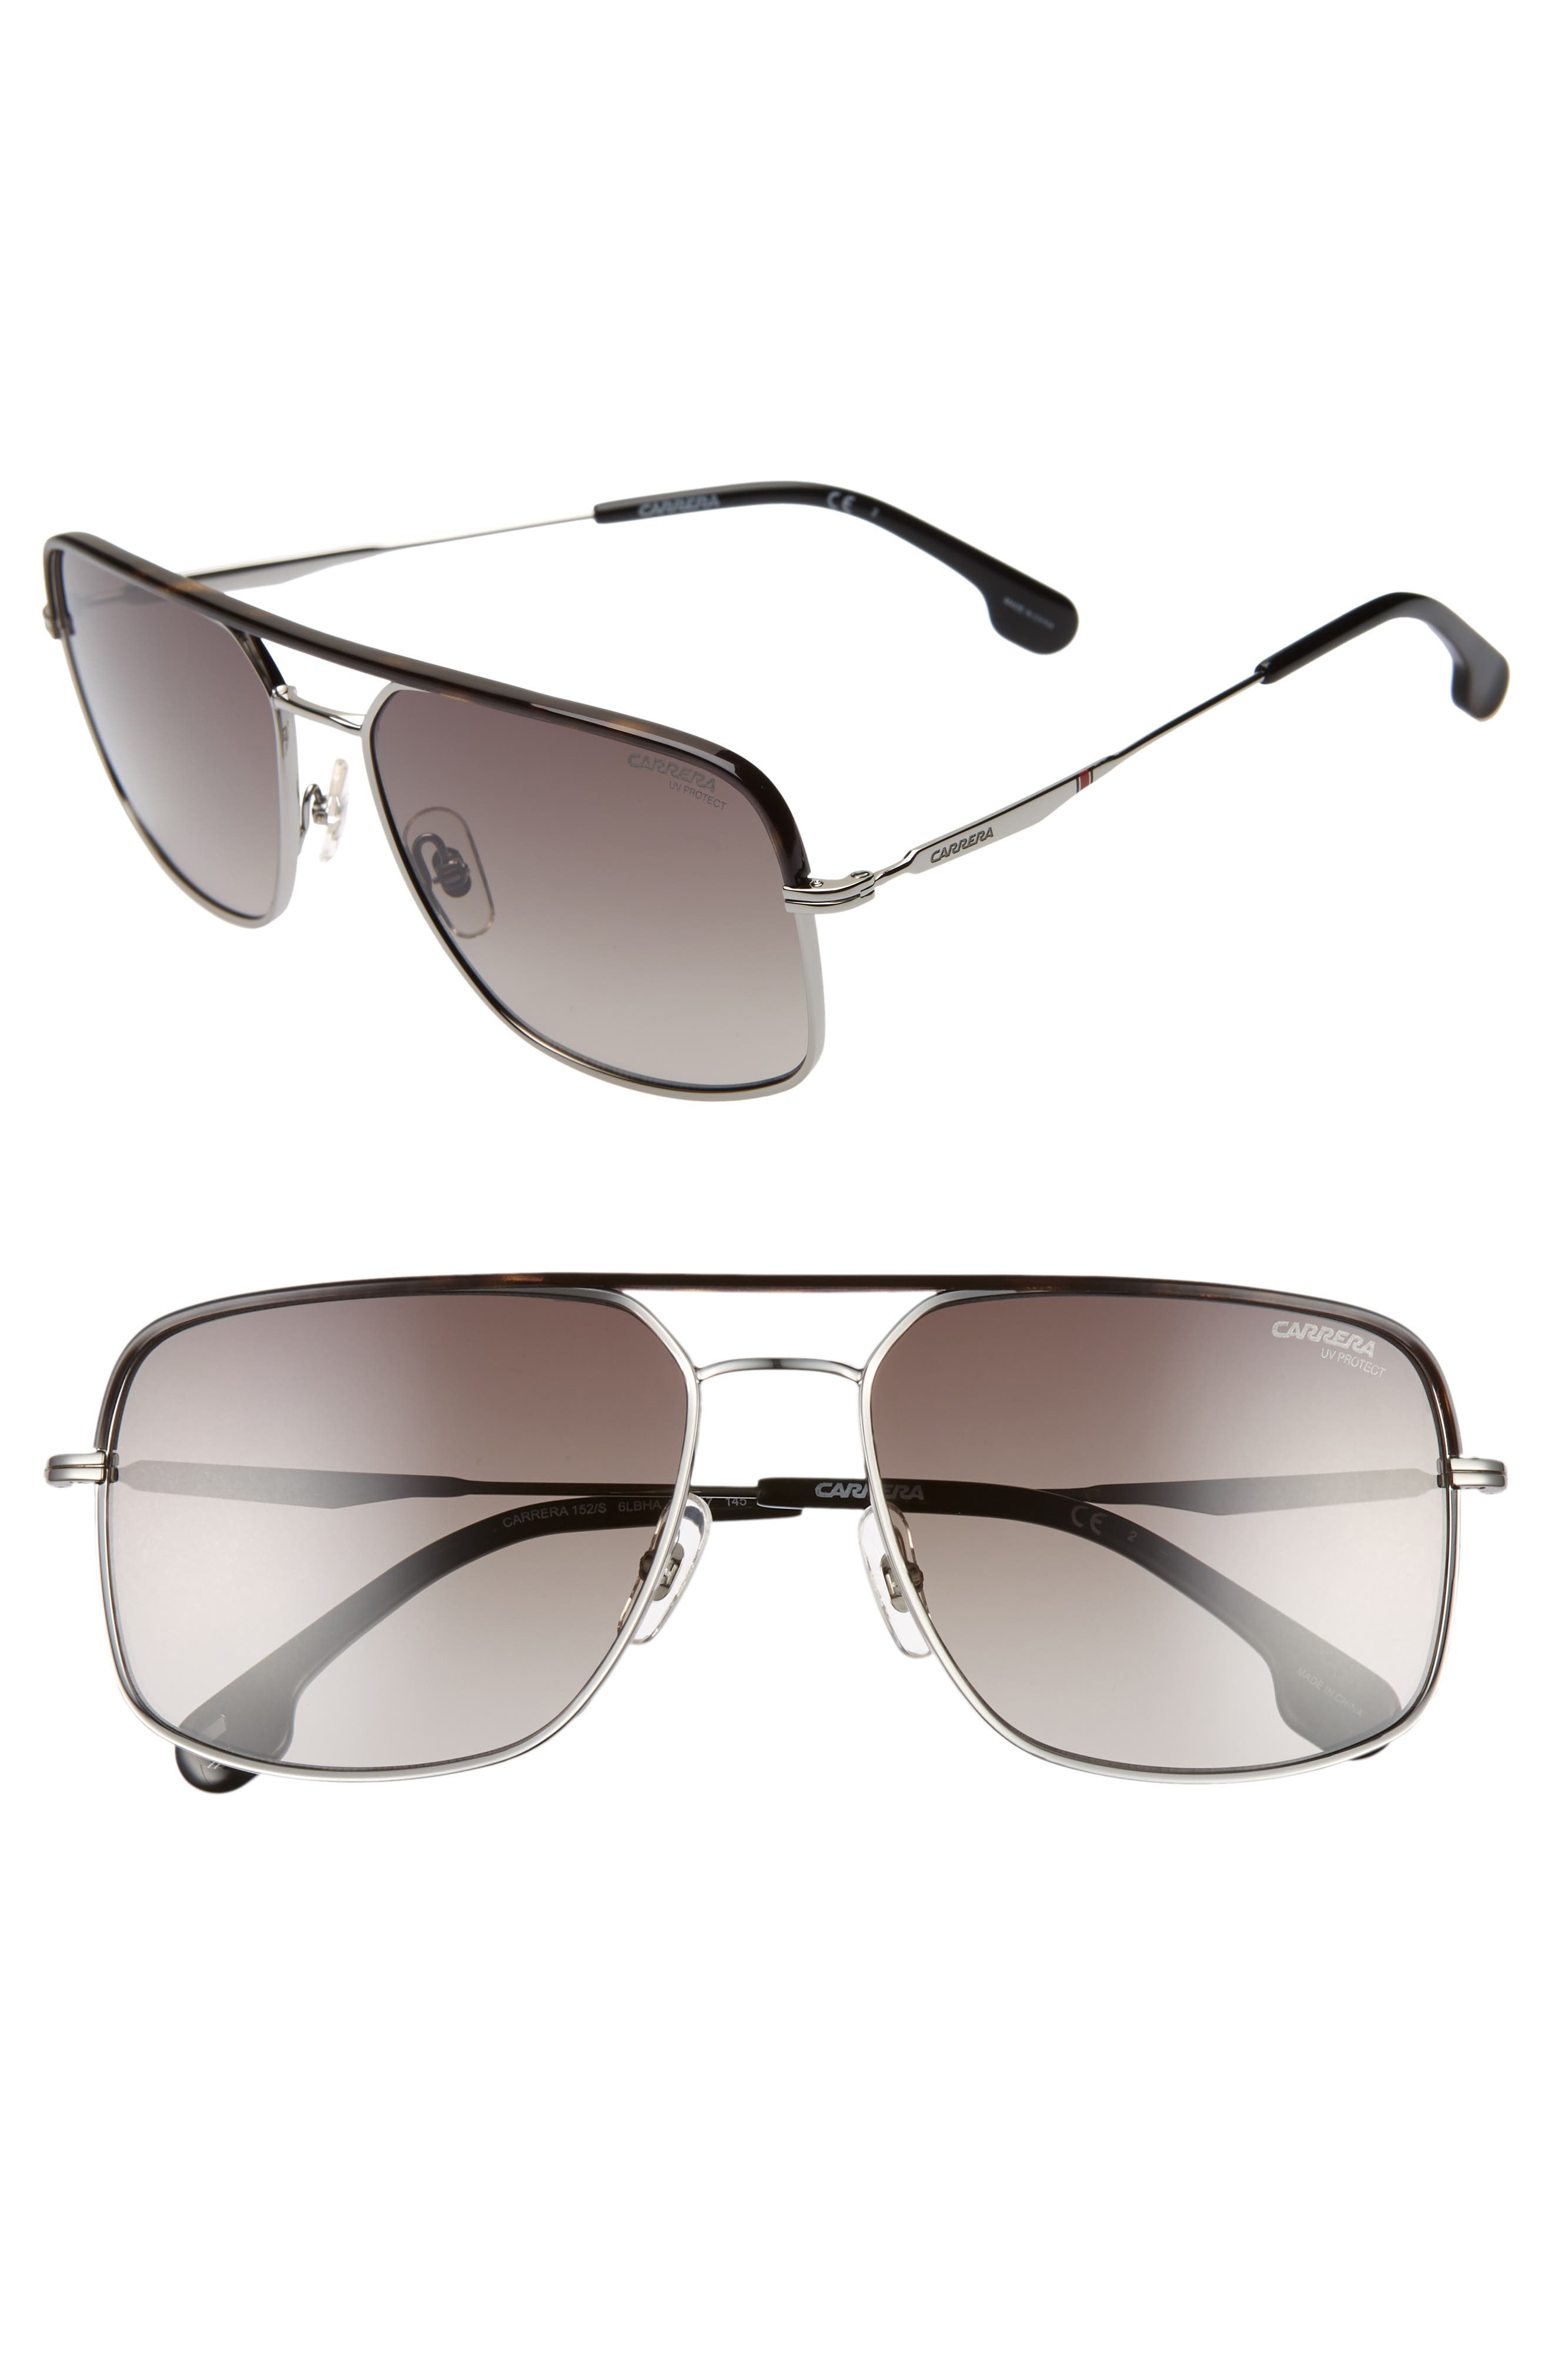 Carrera Eyewear 60Mm Gradient Aviator Sunglasses - Ruthenium